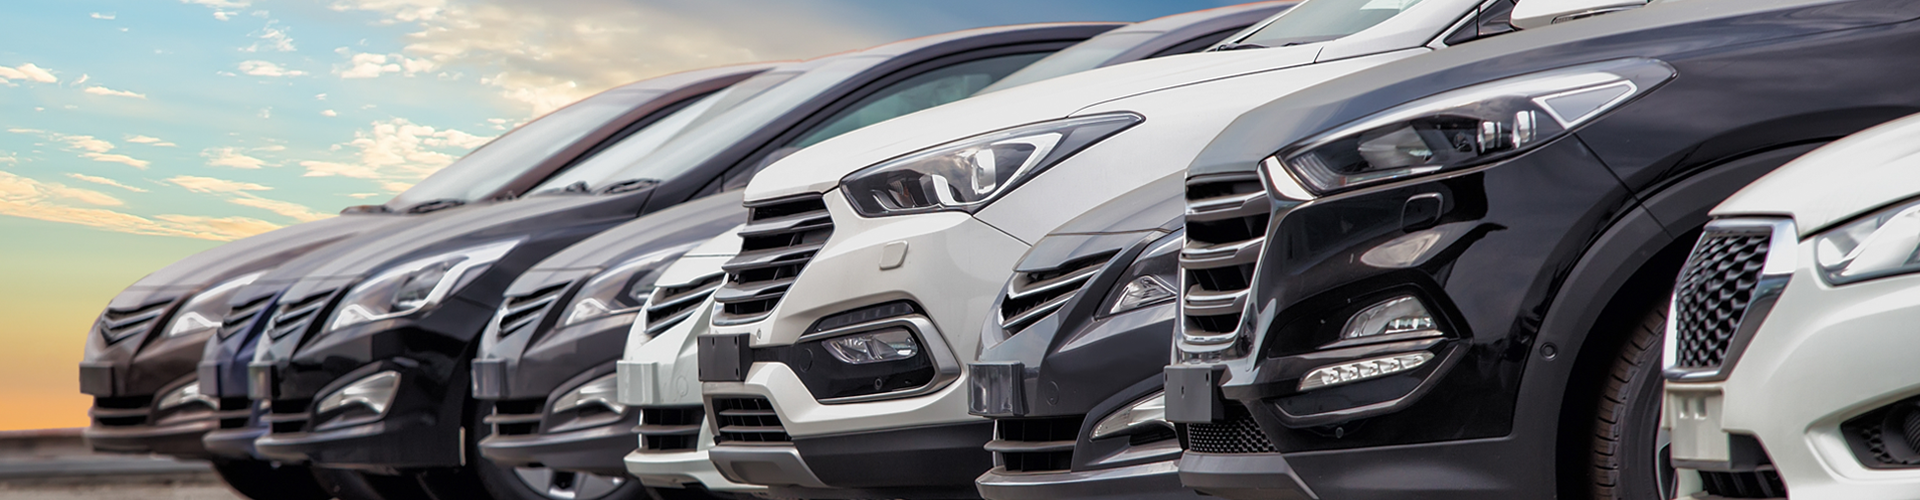 Pre-Owned Vehicles at Onyx Automotive